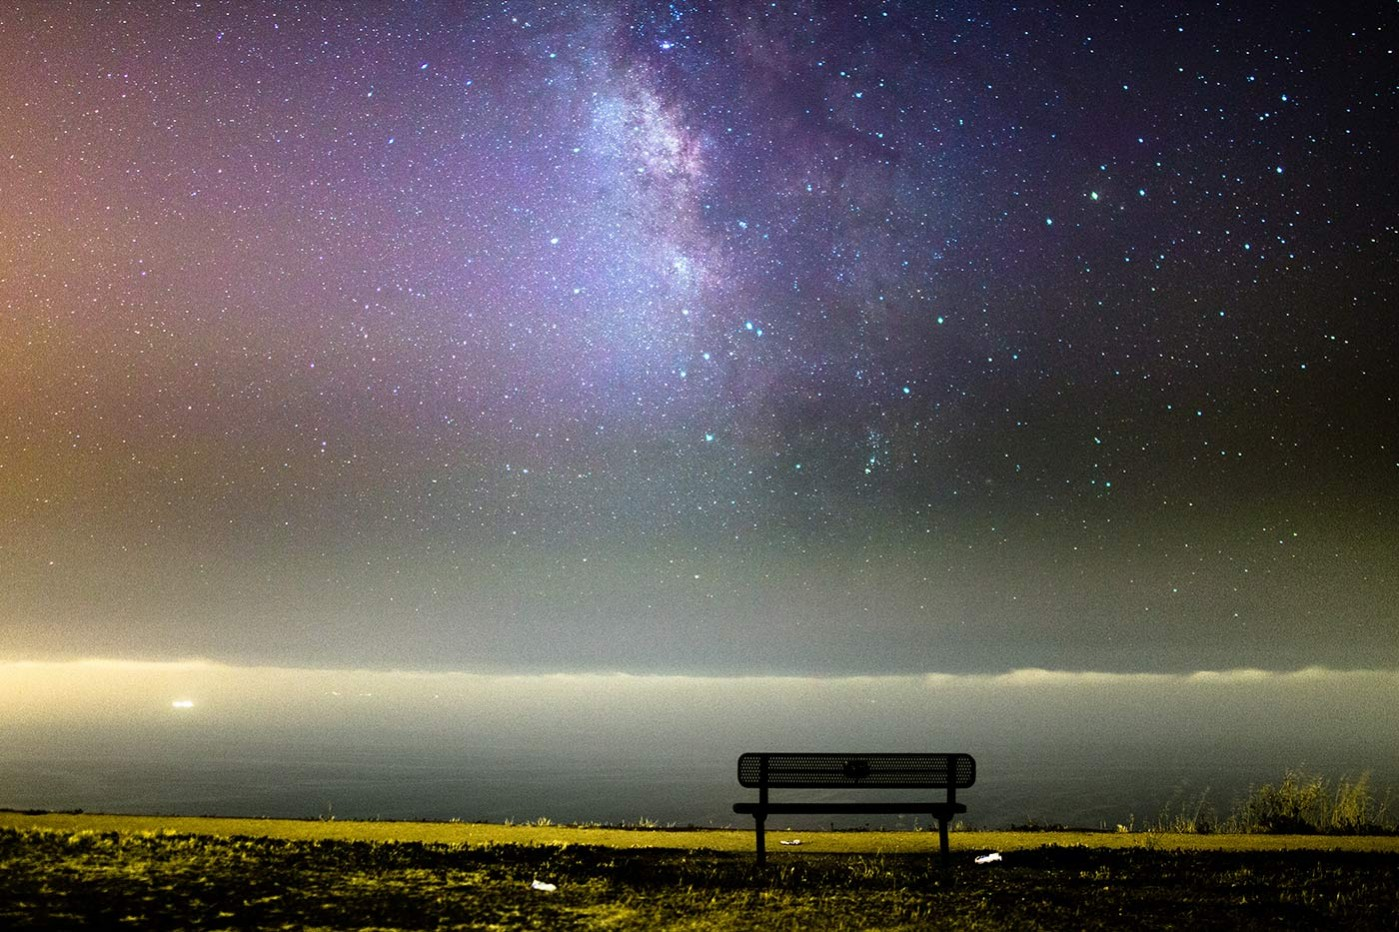 The Milky Way galactic center from Palos Verdes, California